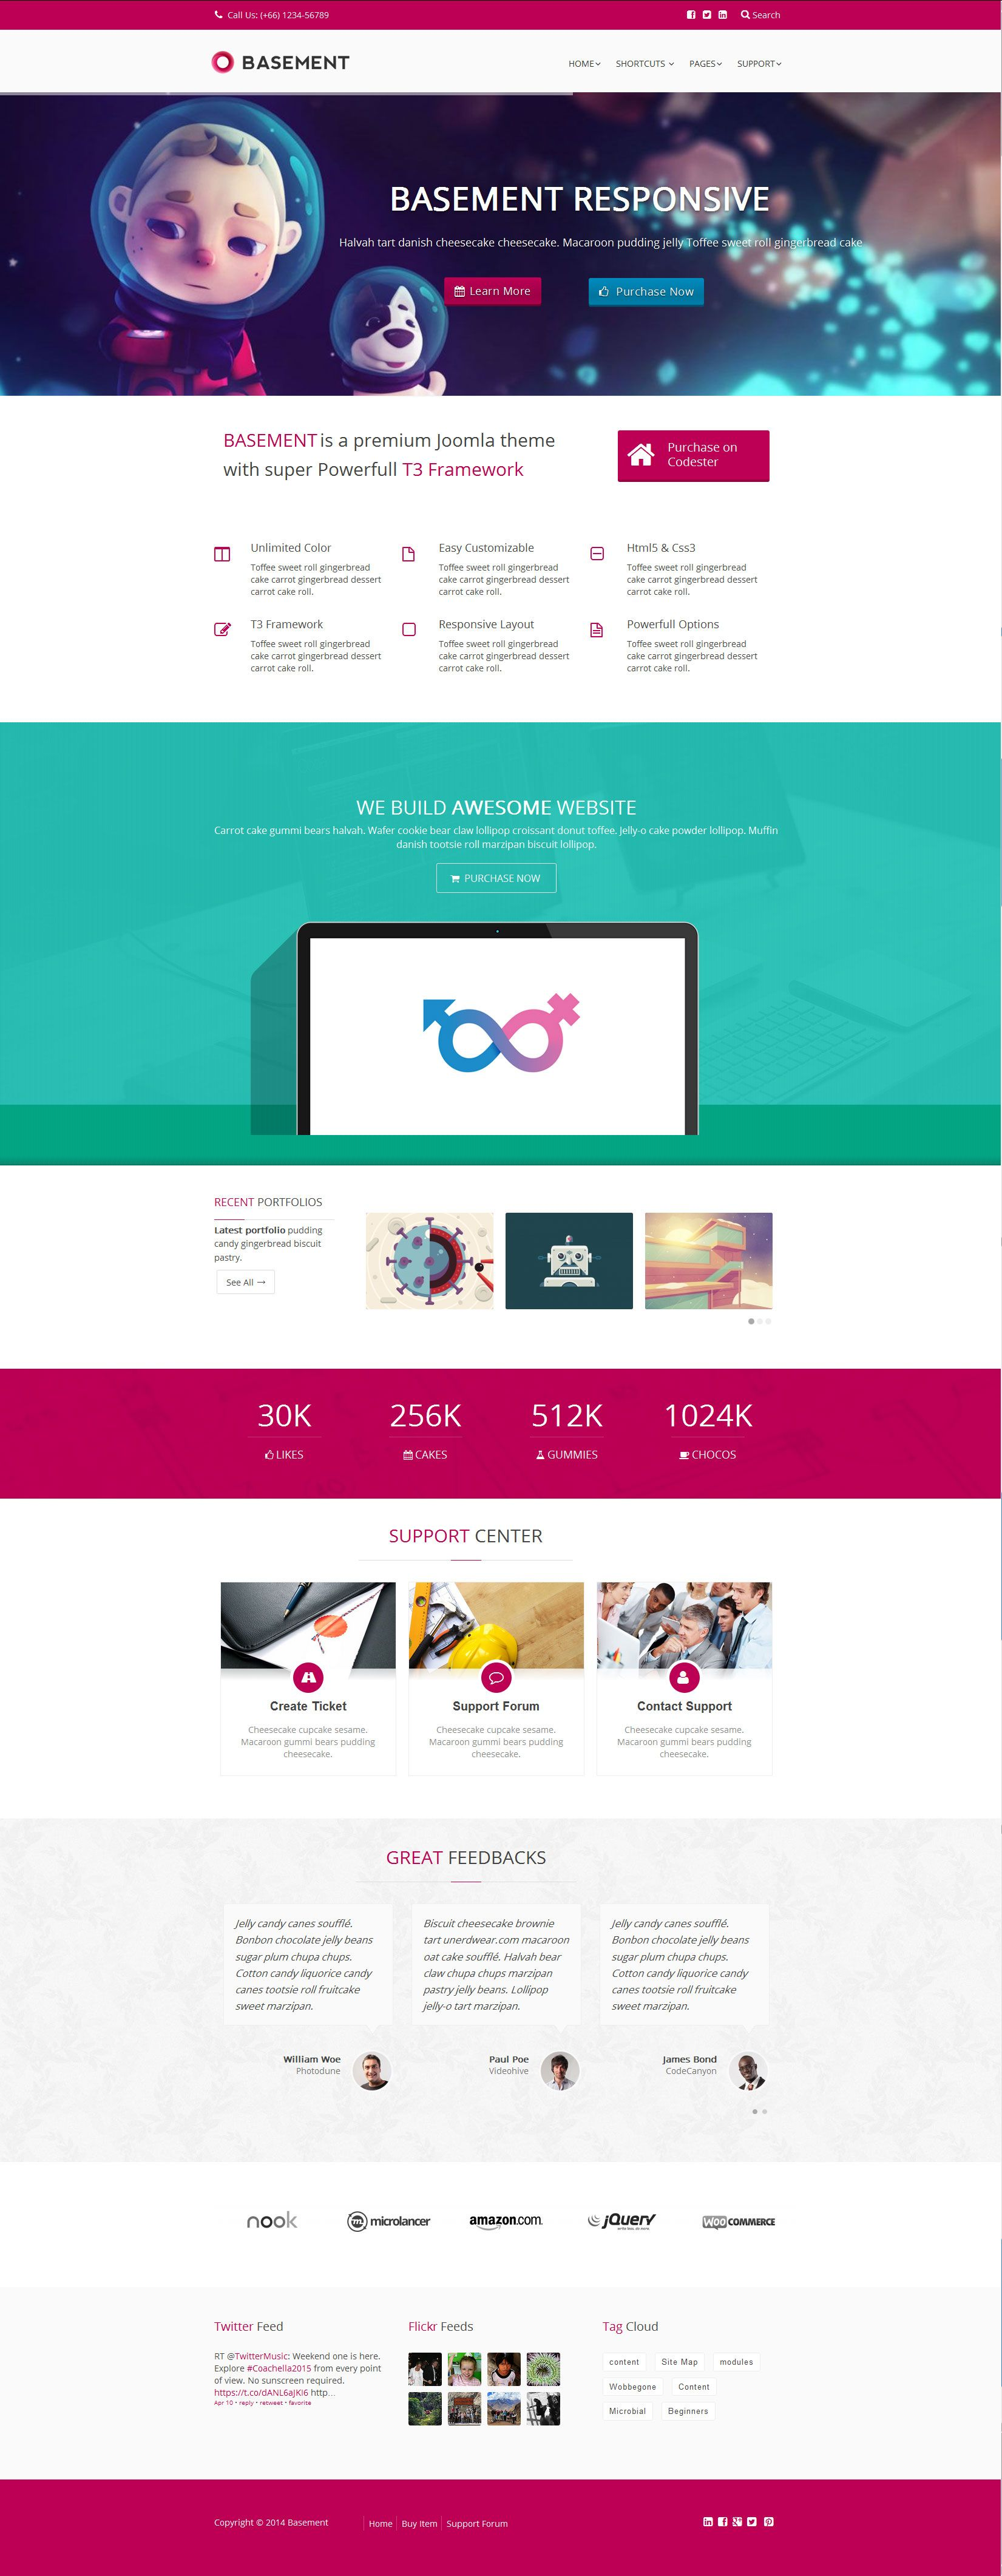 Basement - Responsive Joomla Template Screenshot 1